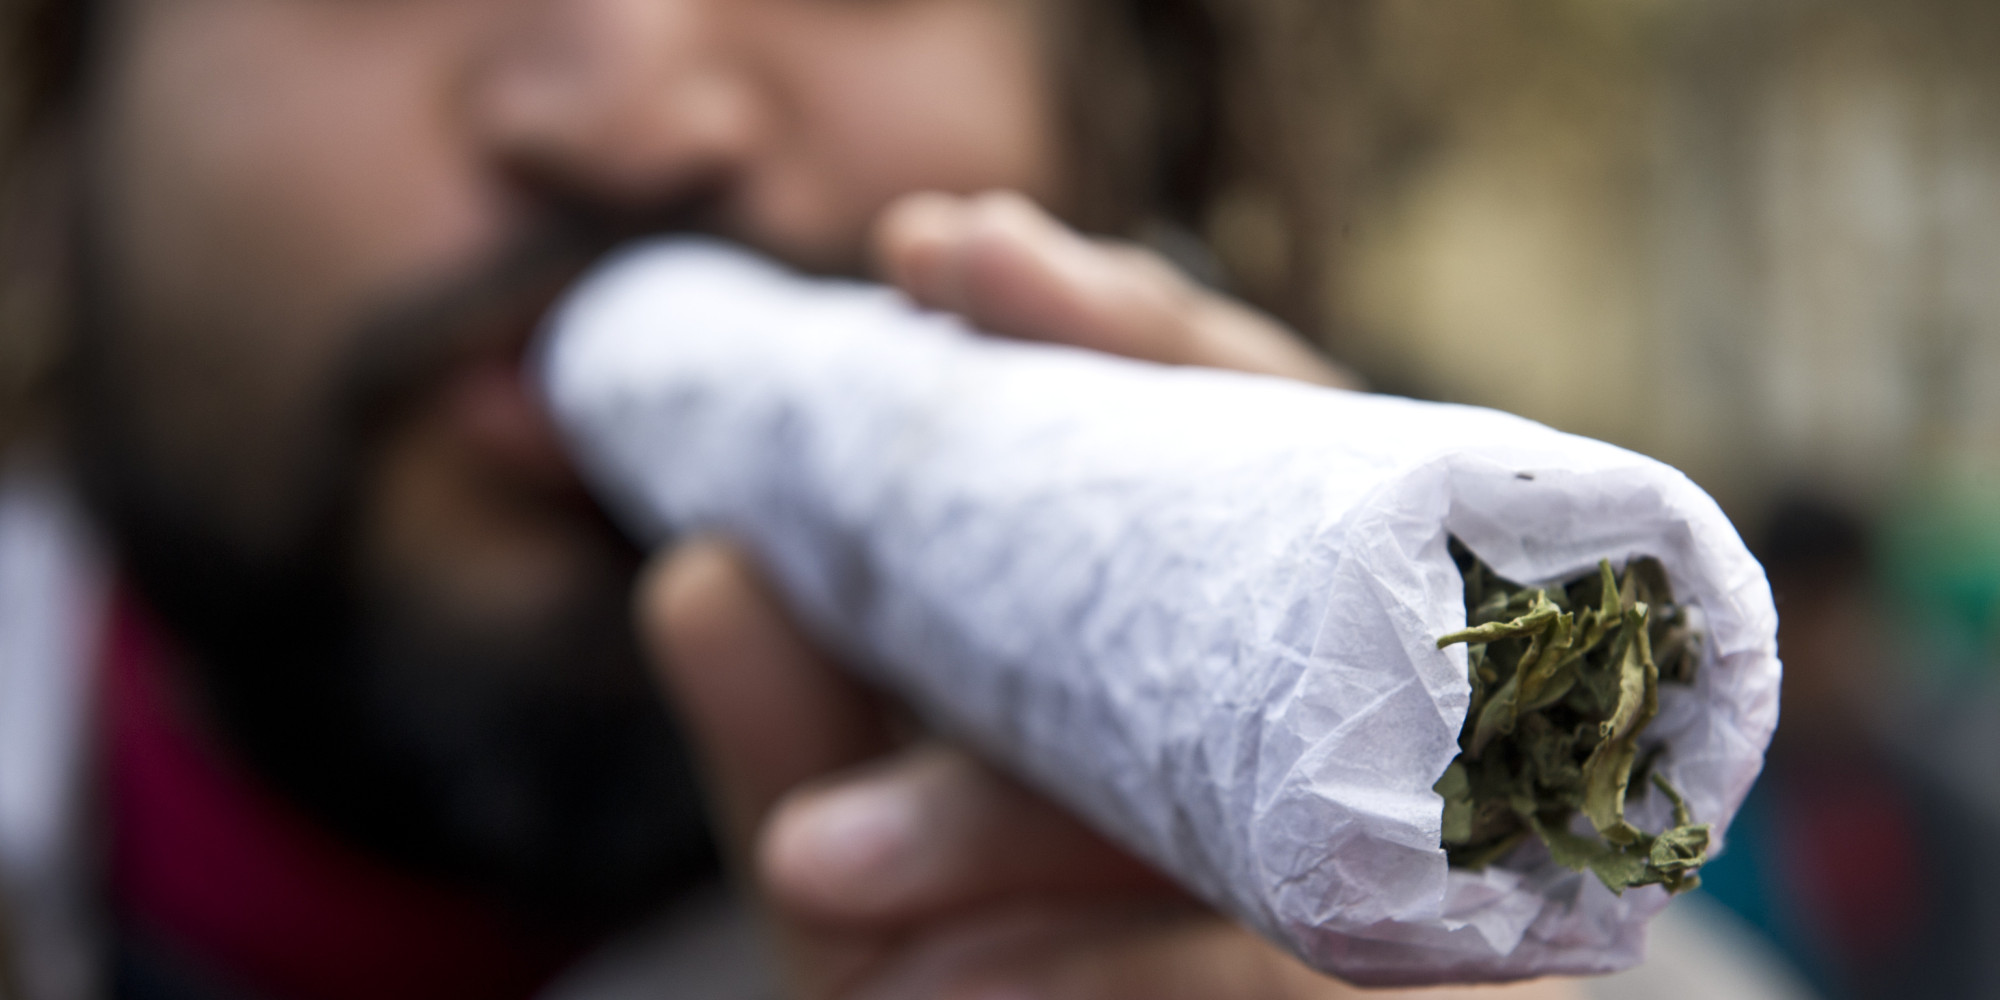 it is legal to smoke marijuana on your front porch in denver